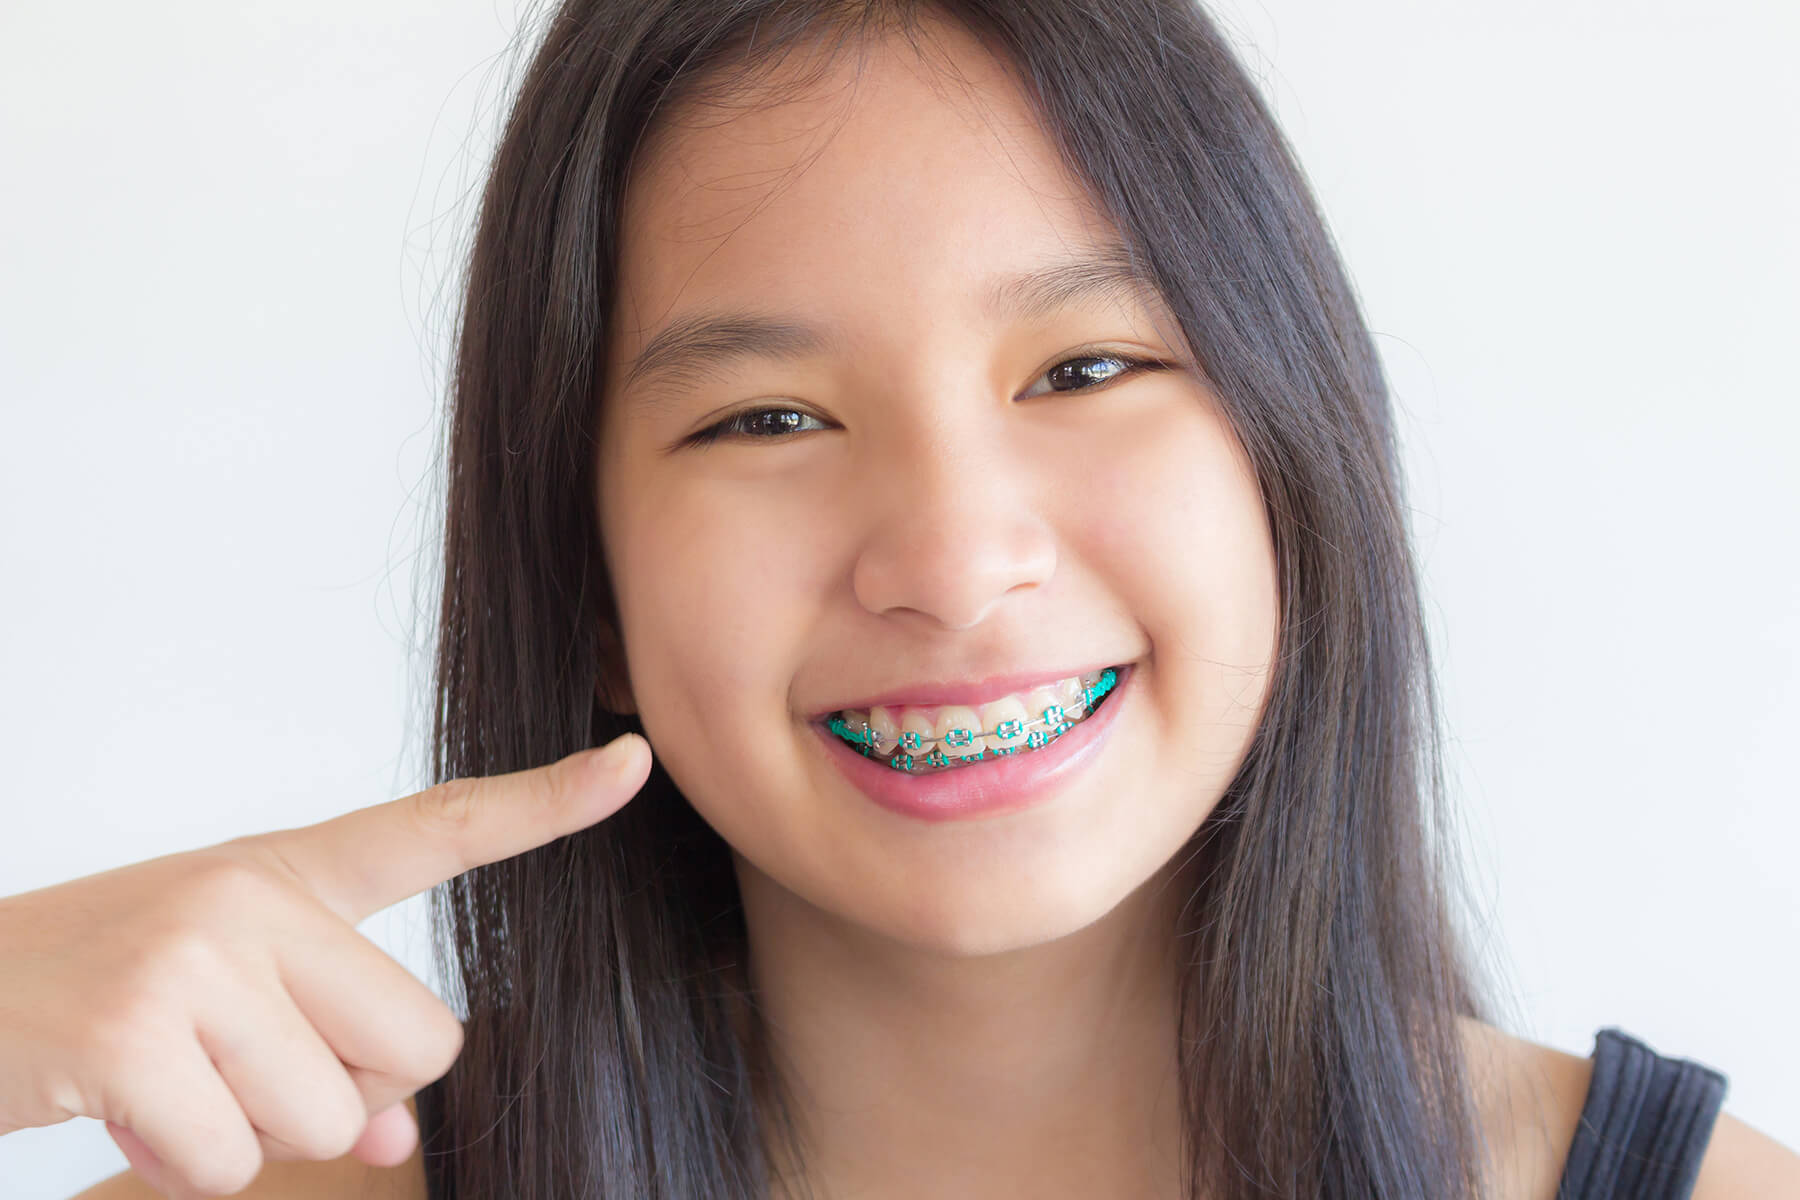 Girl smiling and pointing at her braces